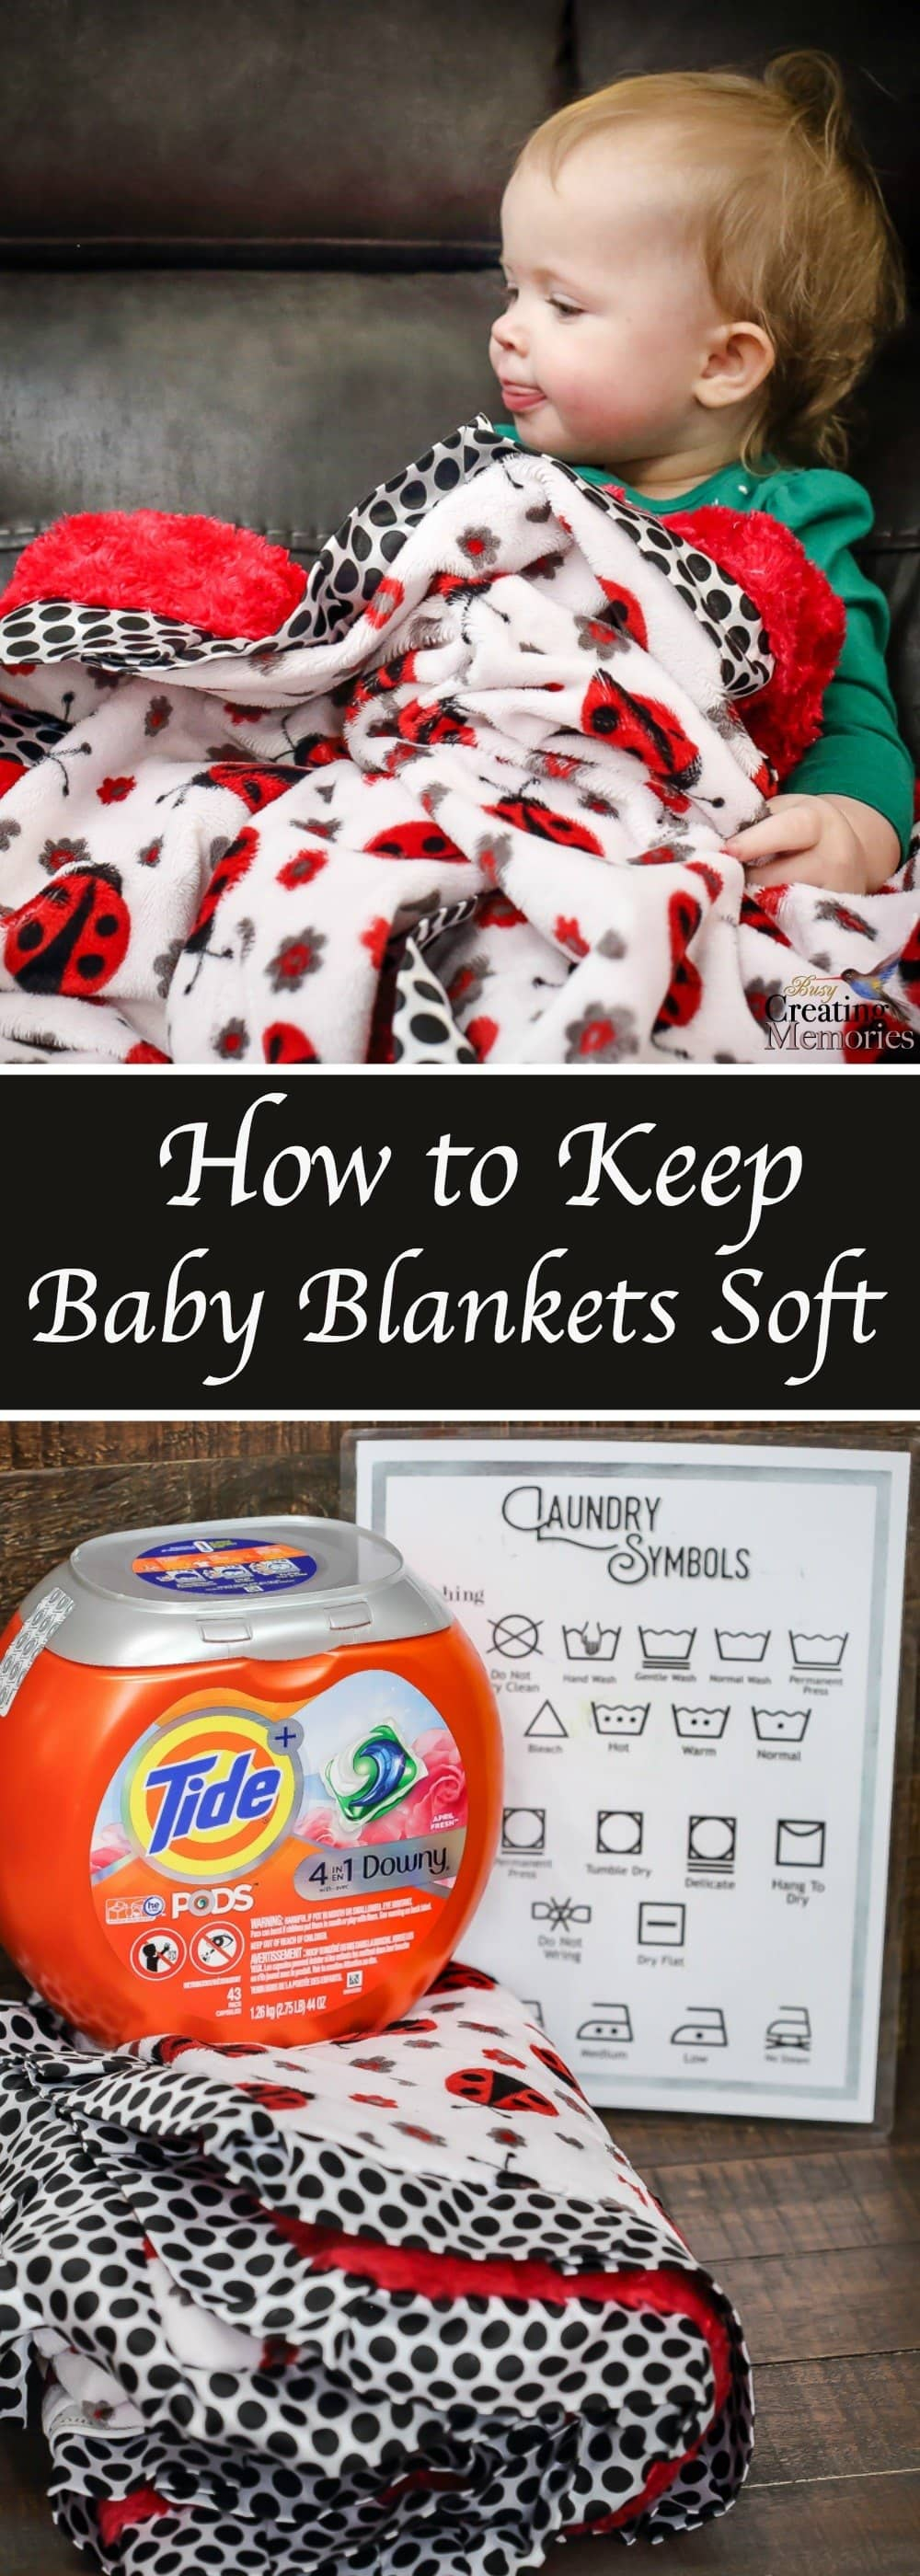 Kids take their baby blanket everywhere! Discover how to Keep their security blanket durable and looking nice for years to come! You can also use the same method to Keep Soft Blankets, and other Fuzzy things, Soft